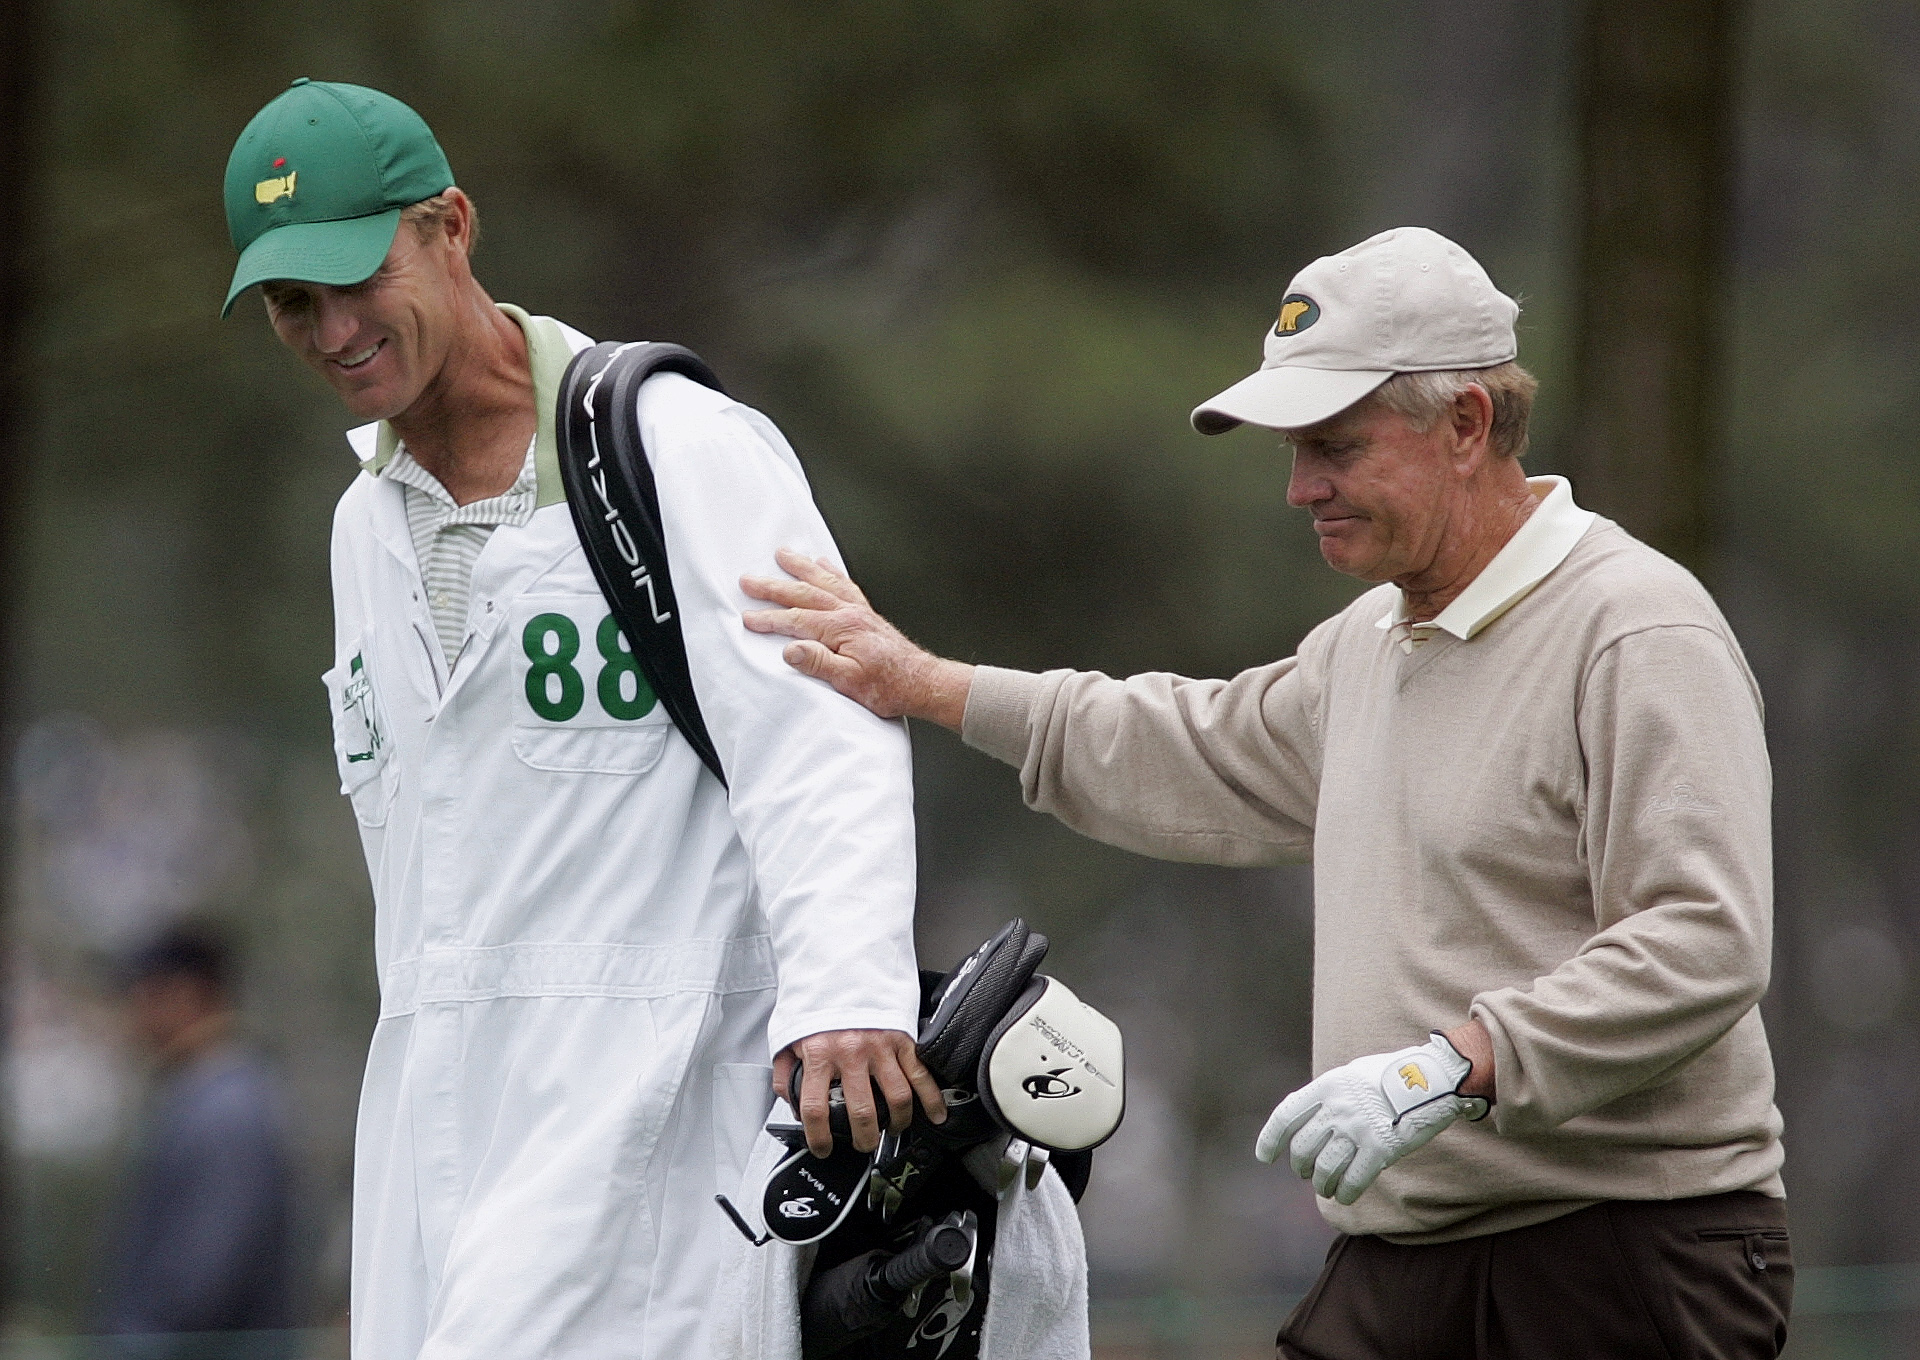 FILE - In this April 9, 2005, file photo, Jack Nicklaus, right, walks with his son and caddie, Jack Nicklaus II, on the ninth hole during second round play of the Masters golf tournament at the Augusta National Golf Club in Augusta, Ga. Nicklaus oldest so